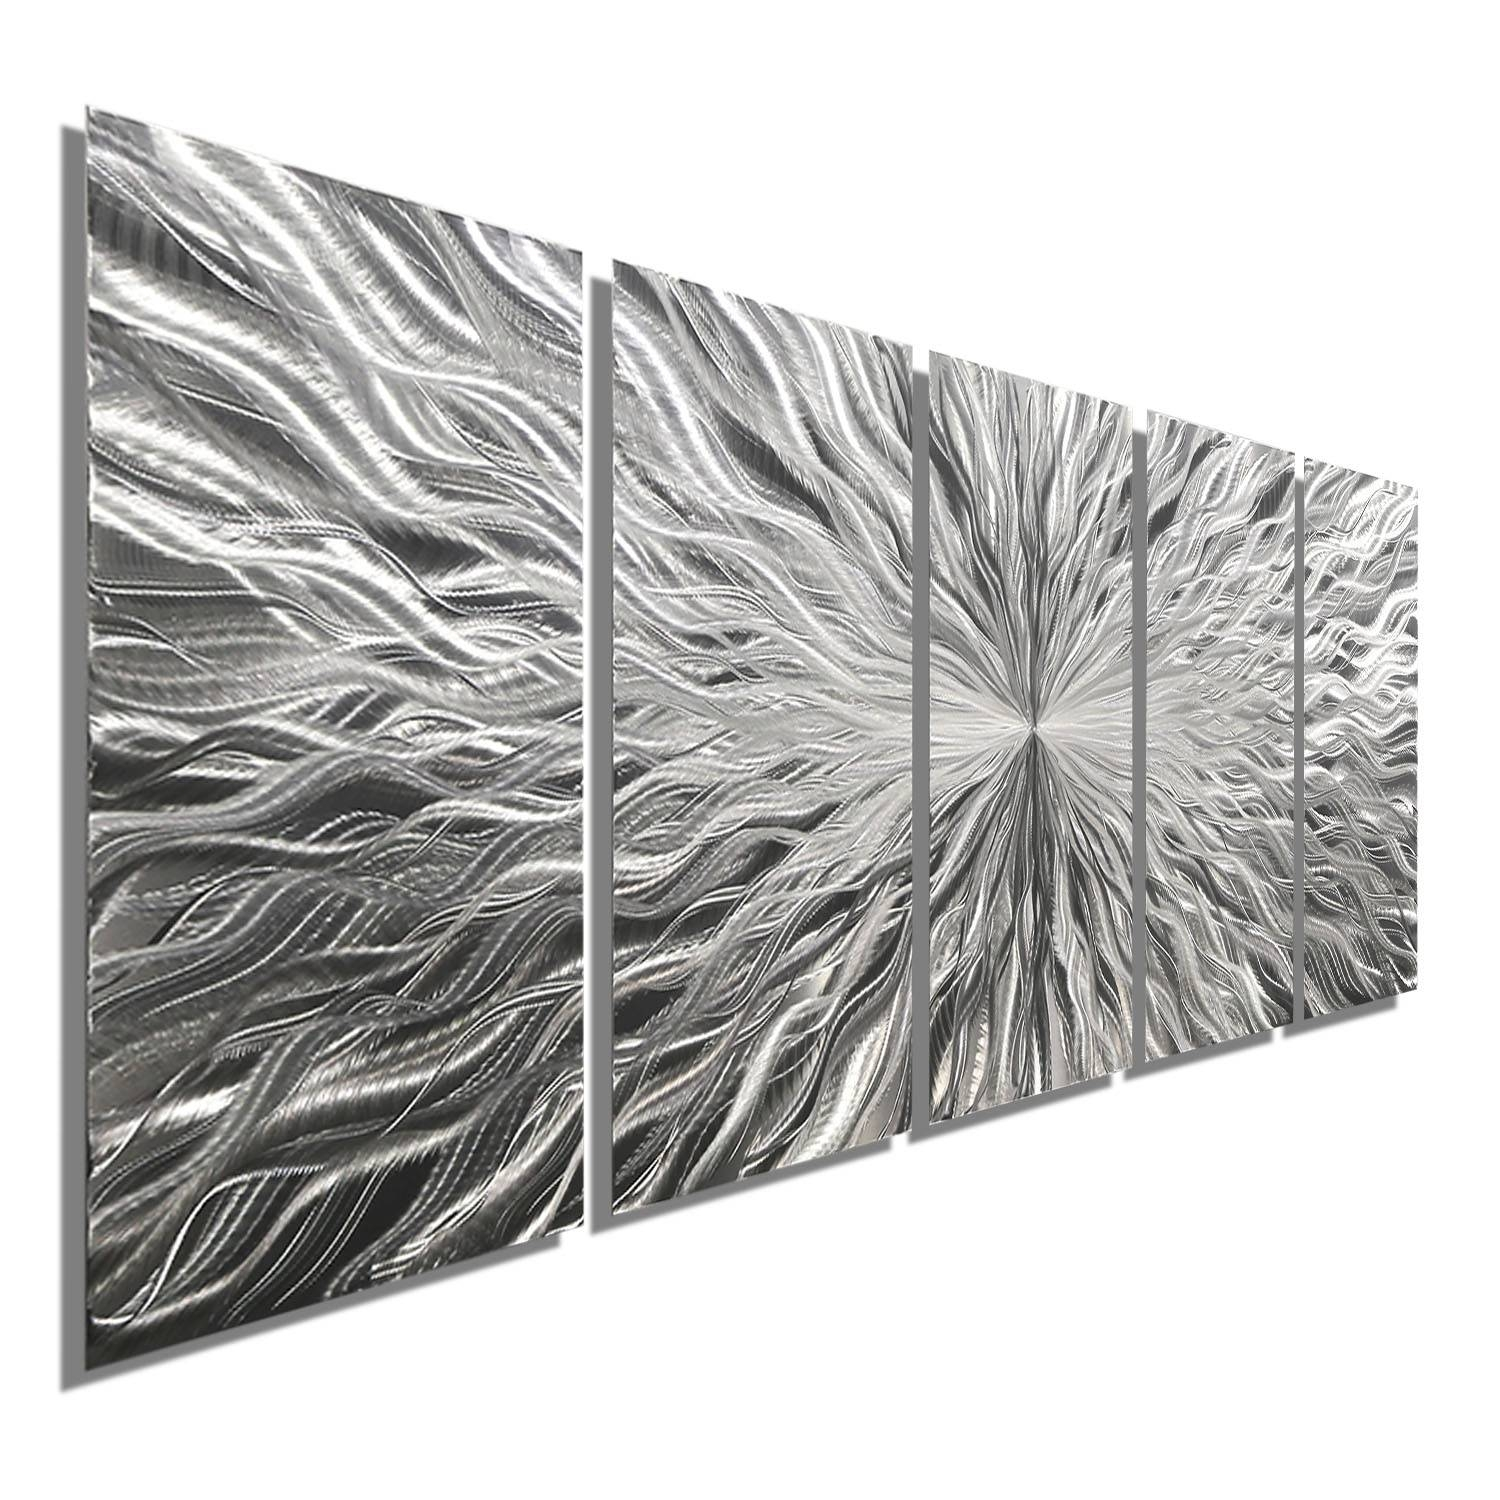 Vortex 5 – Five Panel Silver Modern Abstract Metal Wall Artjon Within Current 3 Piece Metal Wall Art (View 12 of 20)